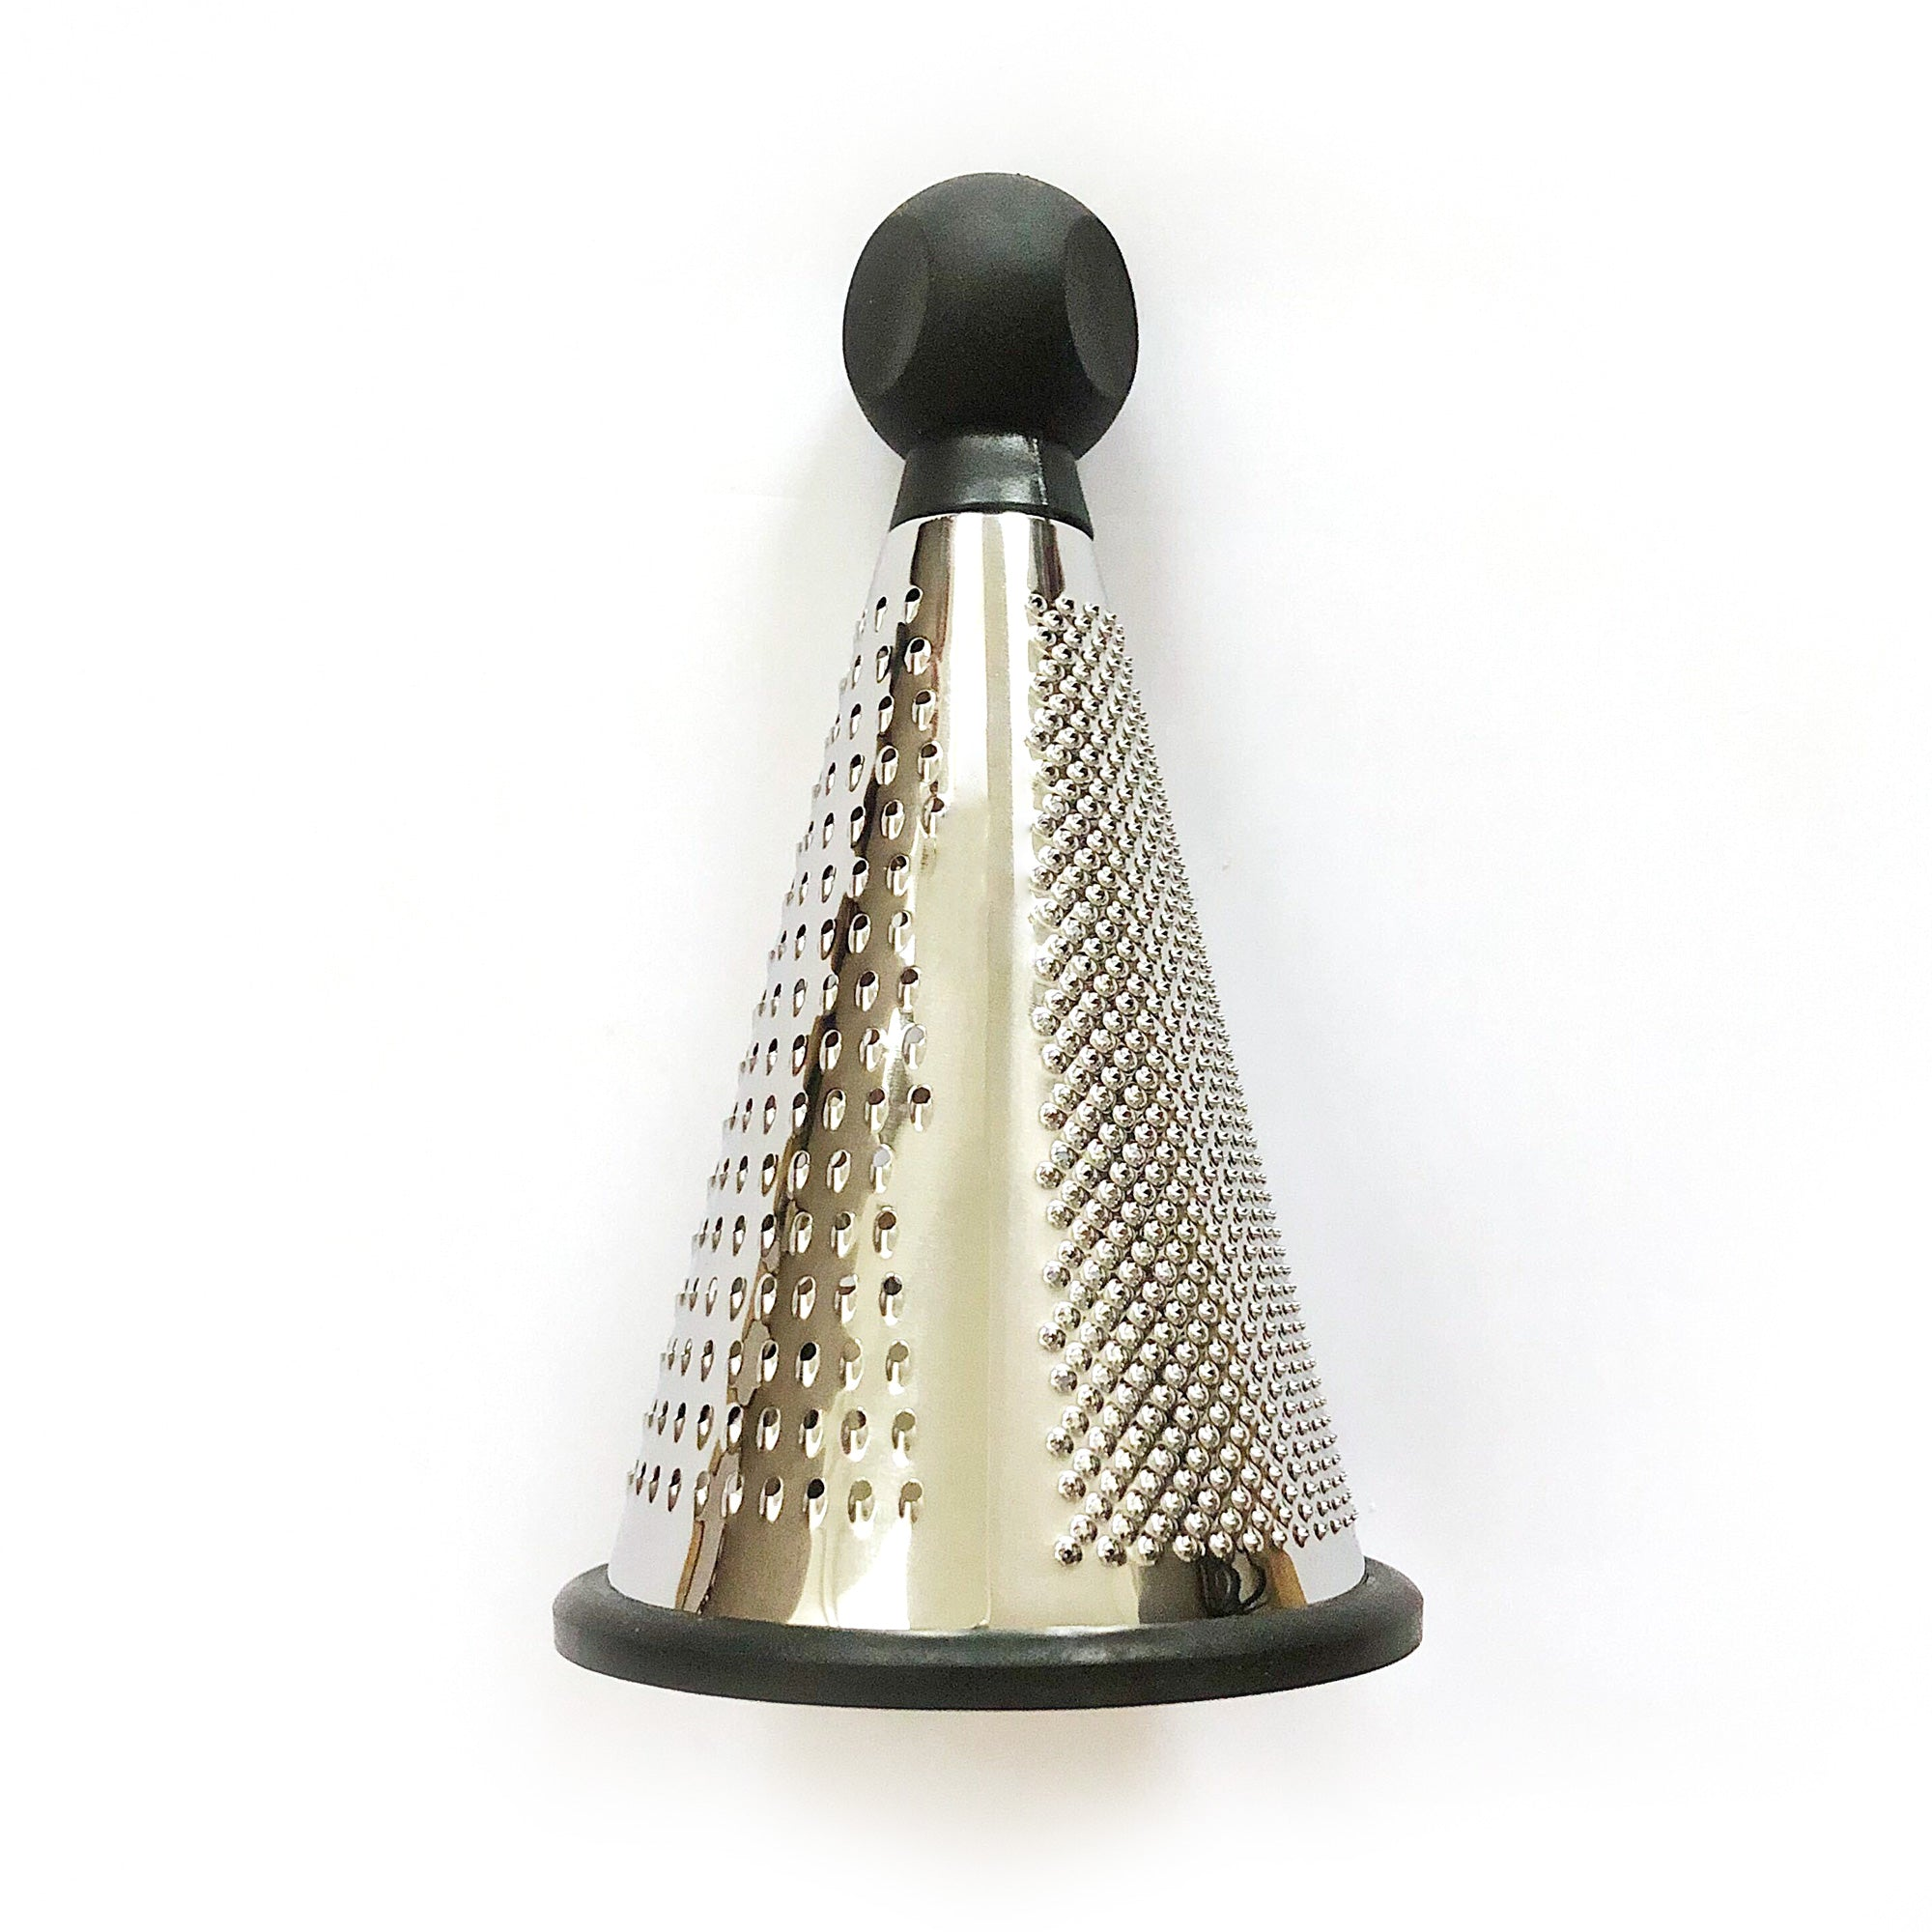 Stainless Steel Cheese Grater - 3 Sided